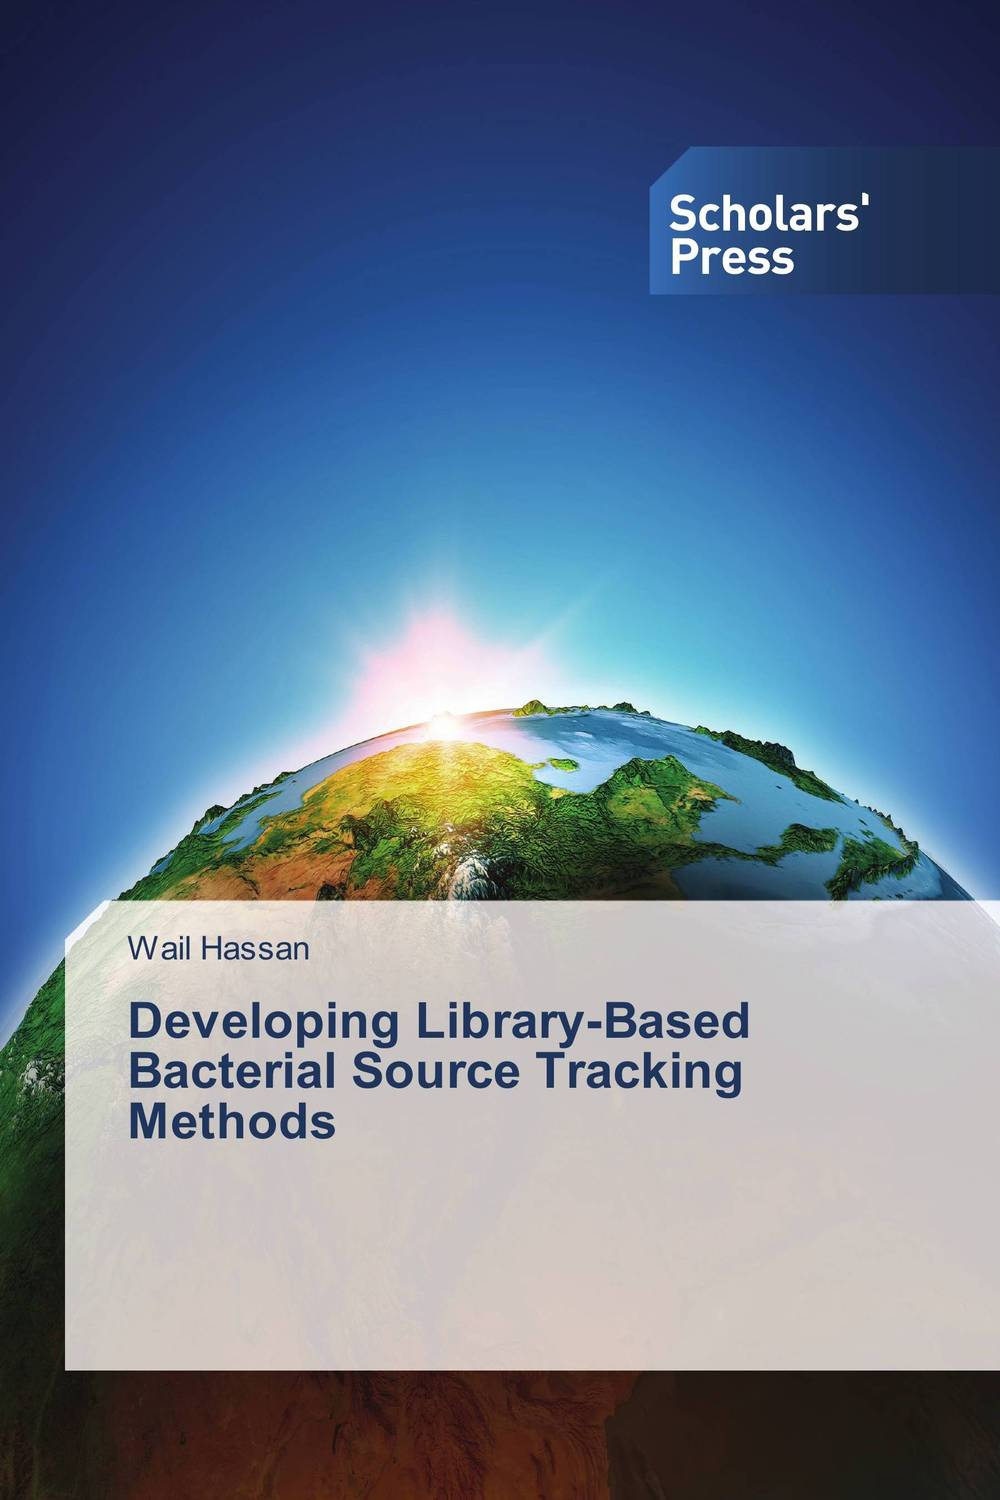 Developing Library-Based Bacterial Source Tracking Methods